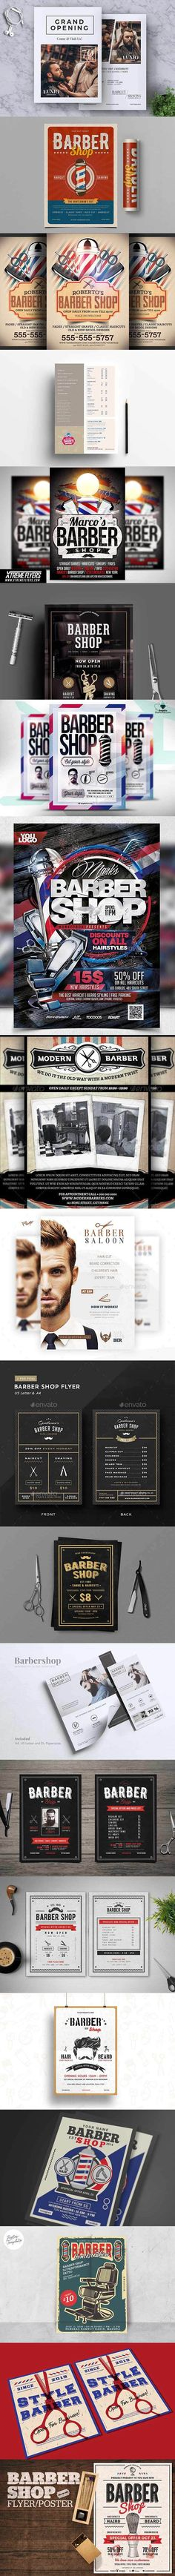 Make Your Own Flyer, Psd Flyer Templates, Ways To Communicate, Promote Your Business, Marketing Tools, Barber Shop, Print Design, Cool Stuff, Barbershop